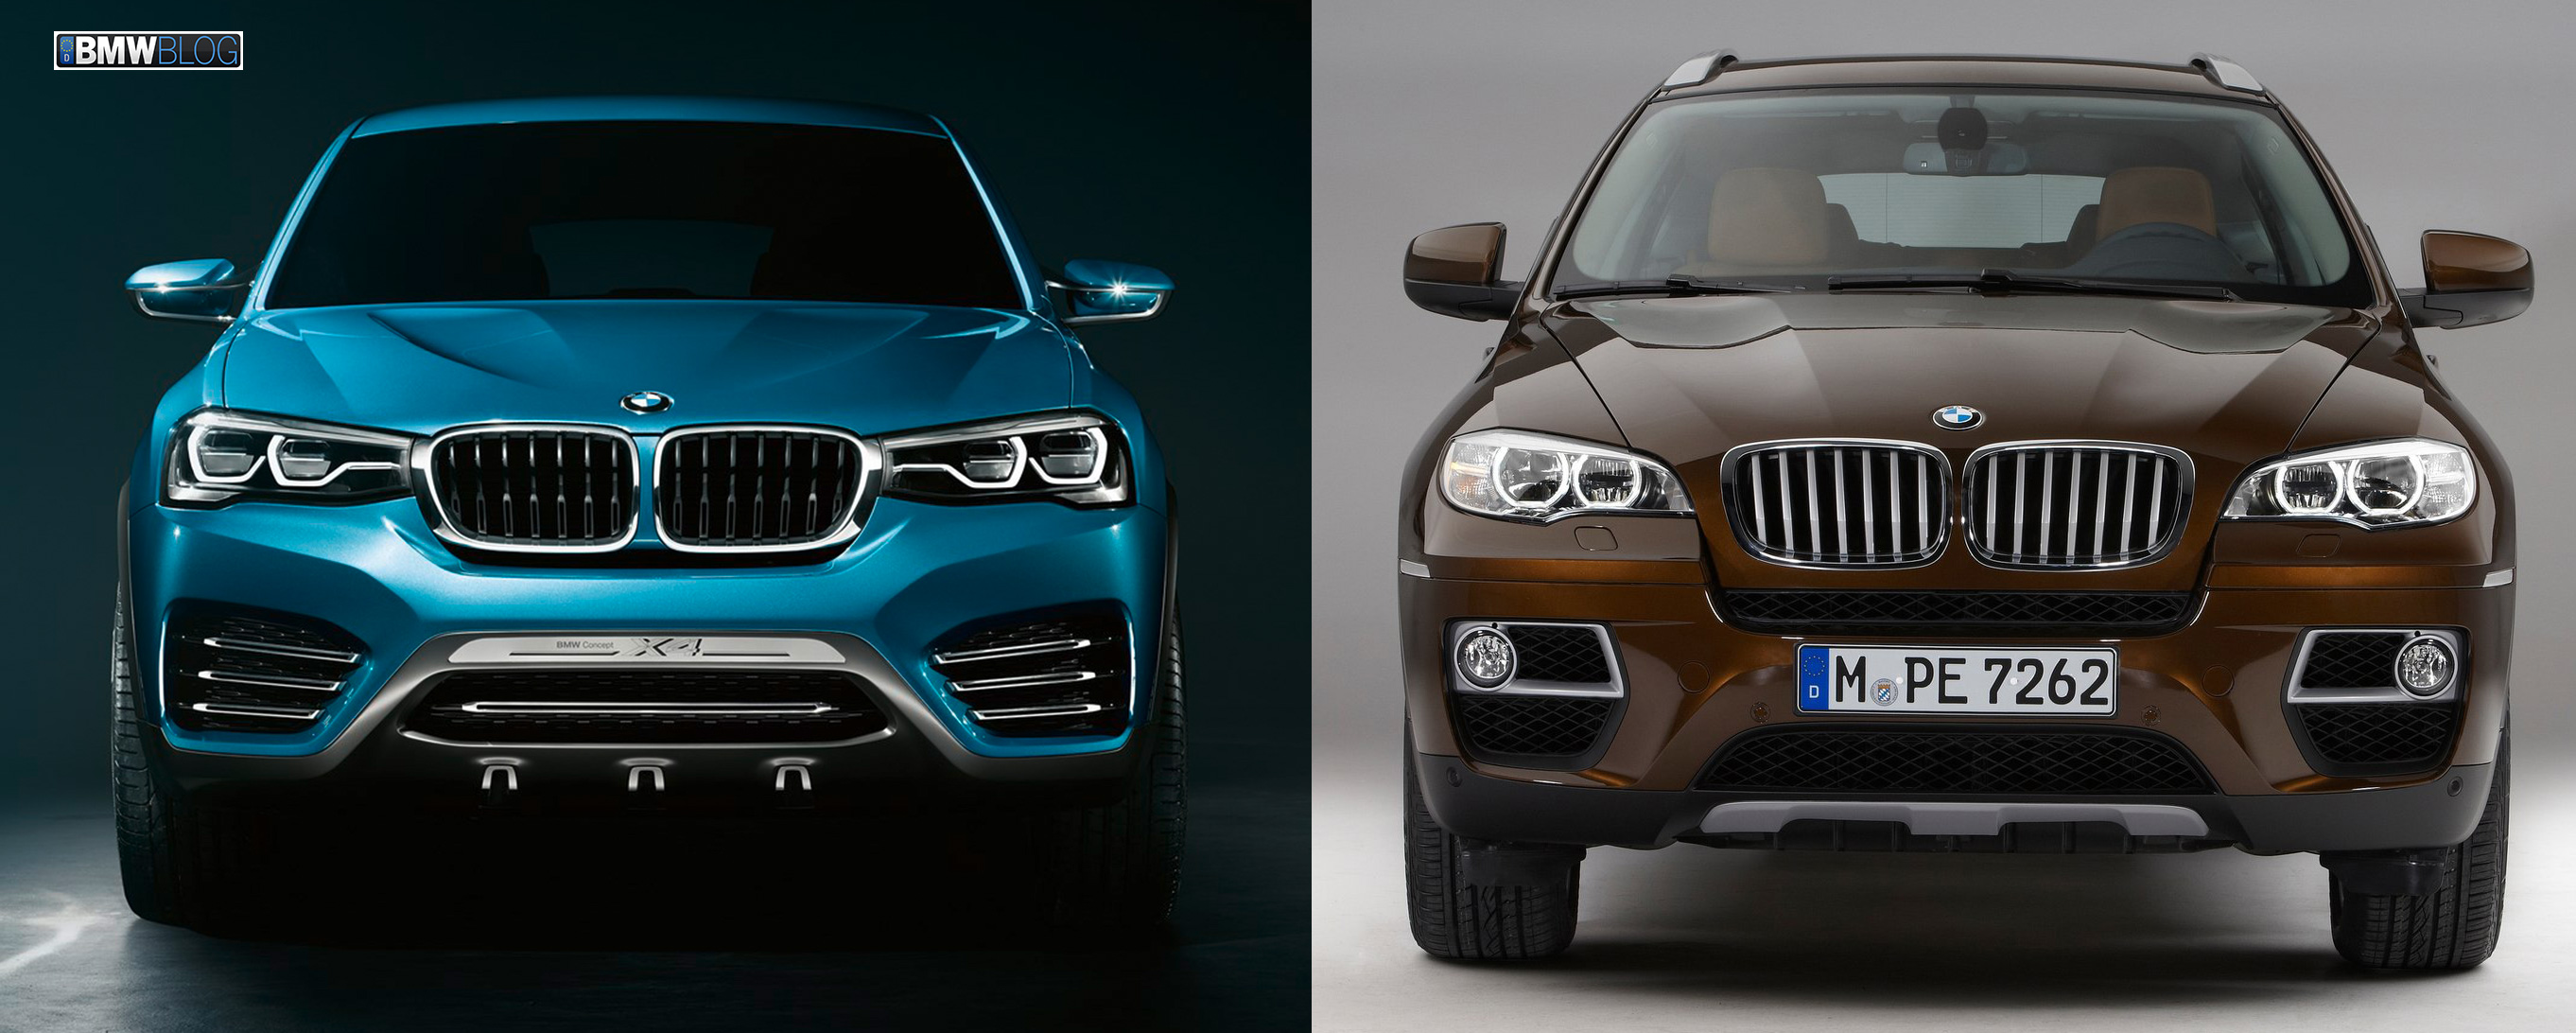 Photo Comparison Bmw X4 Vs Bmw X6